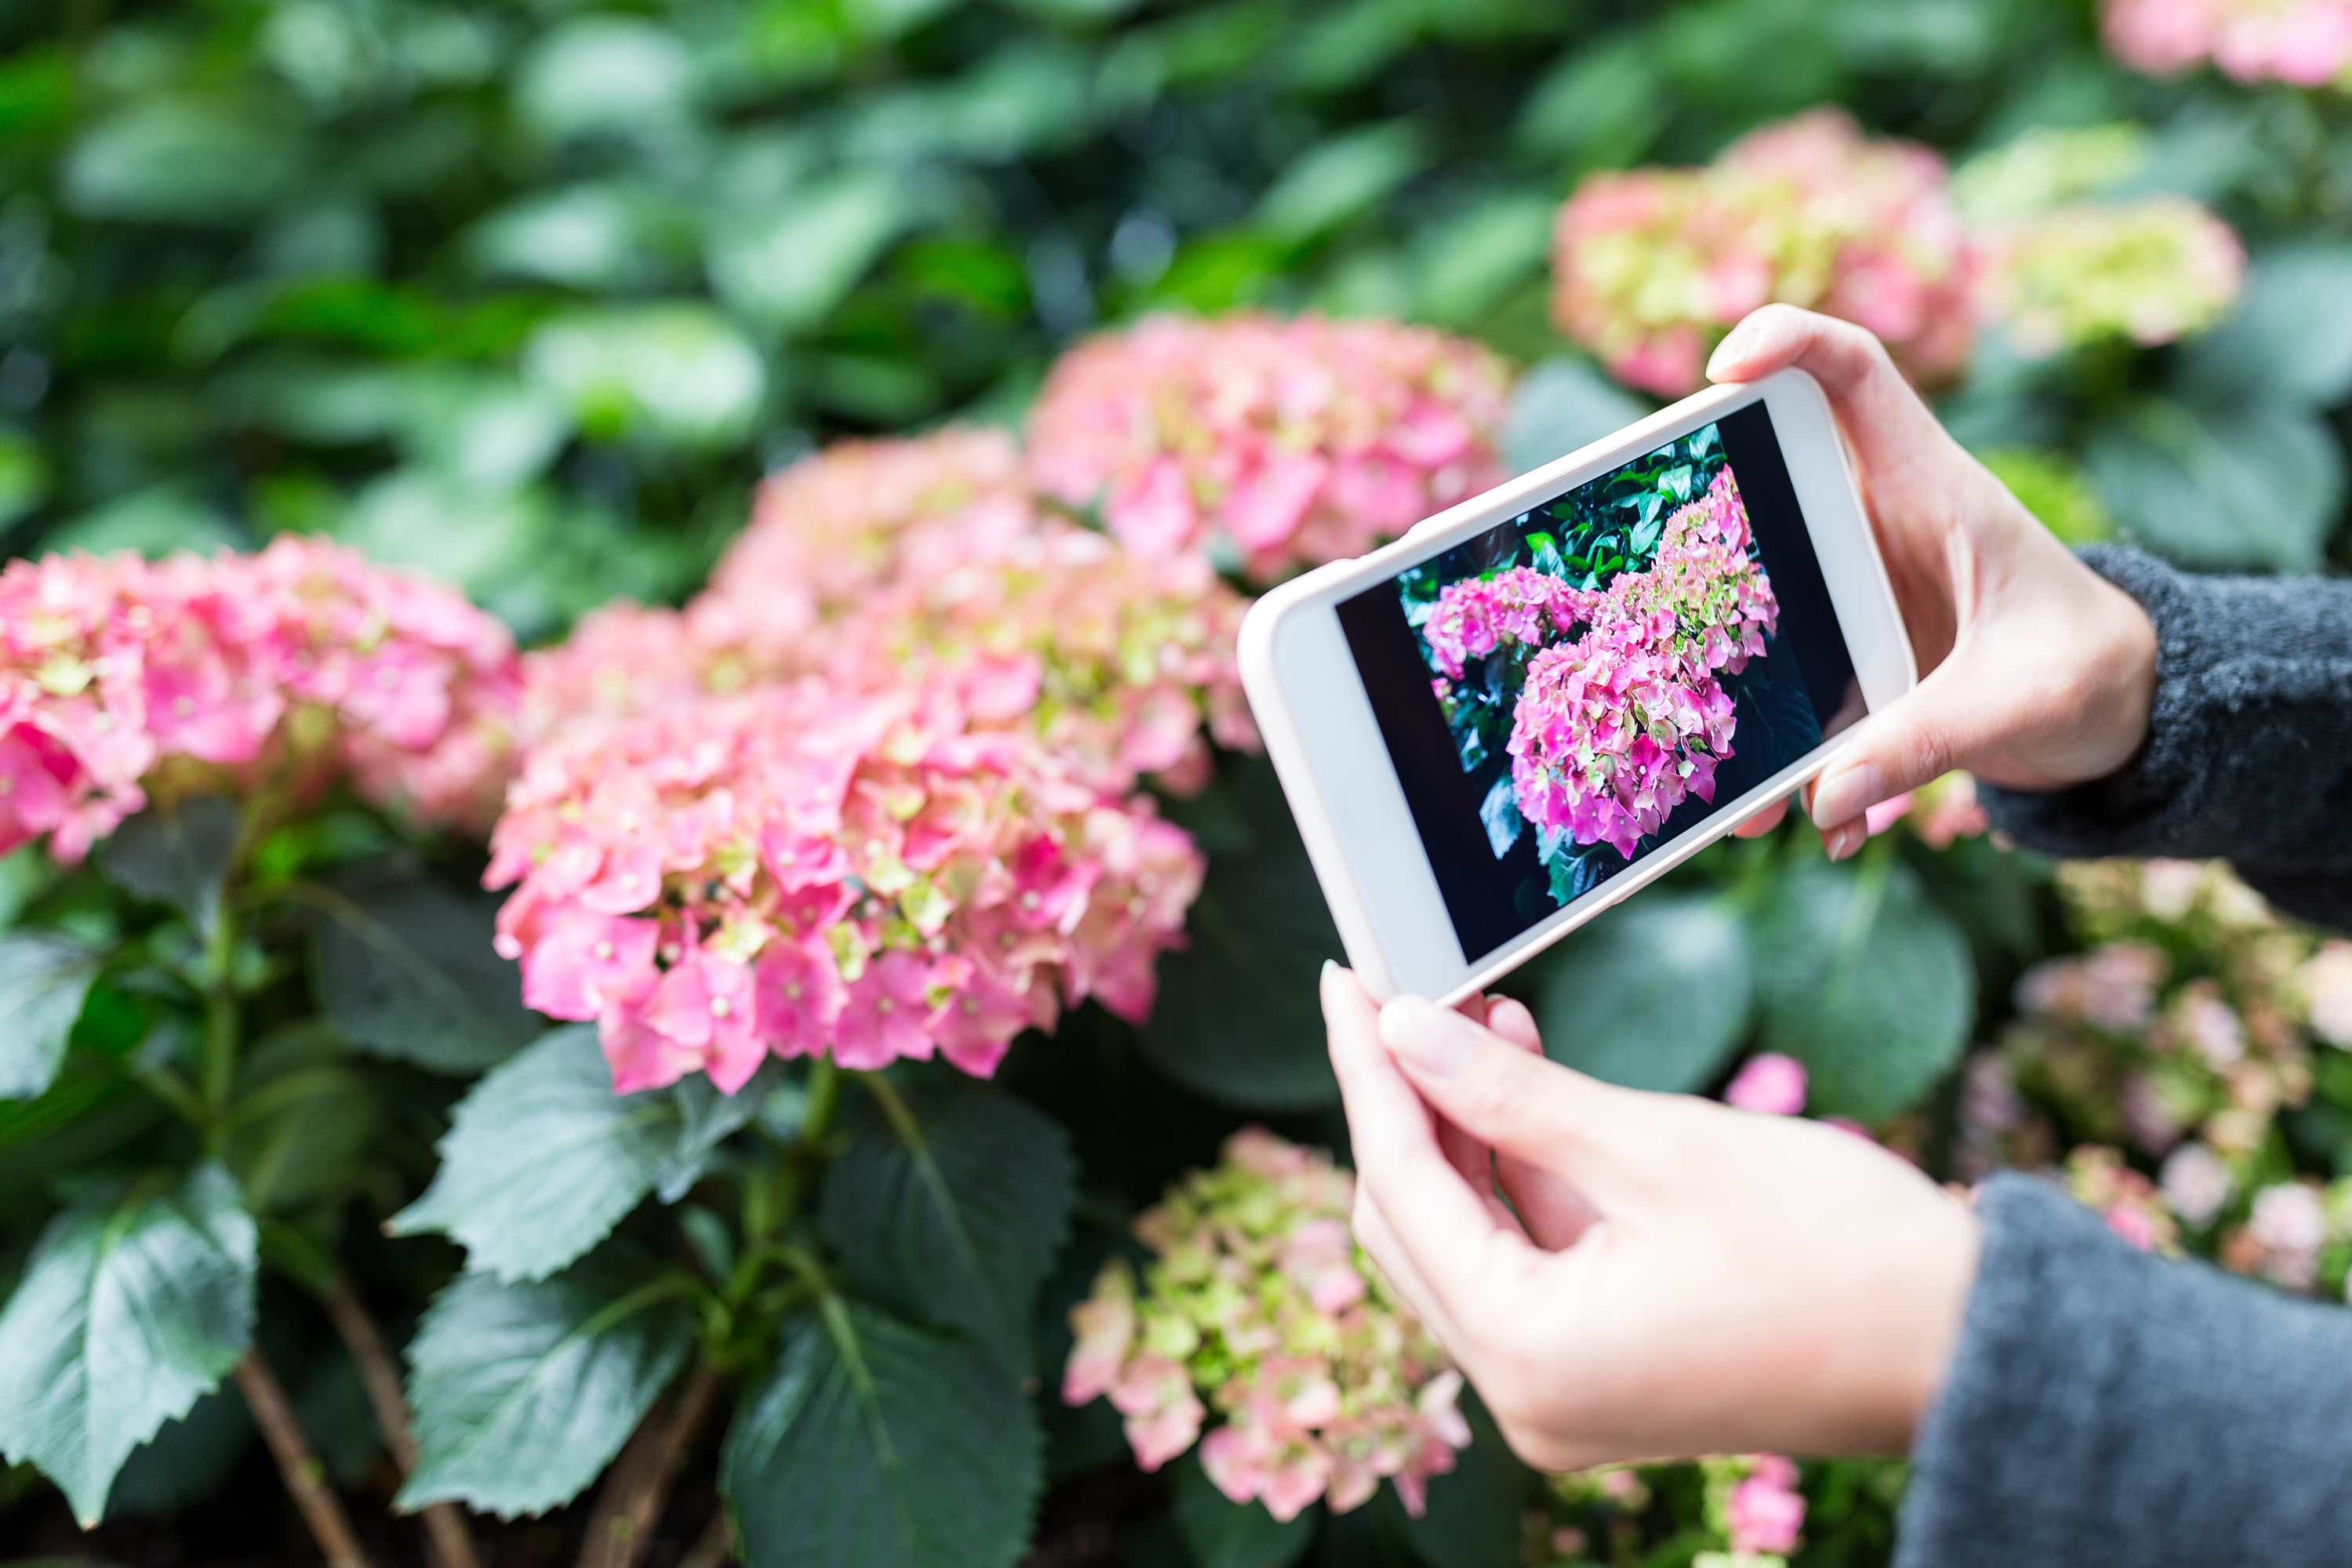 apps | apps that identify plants | flowers | plants | phones | how to | how to identify plants